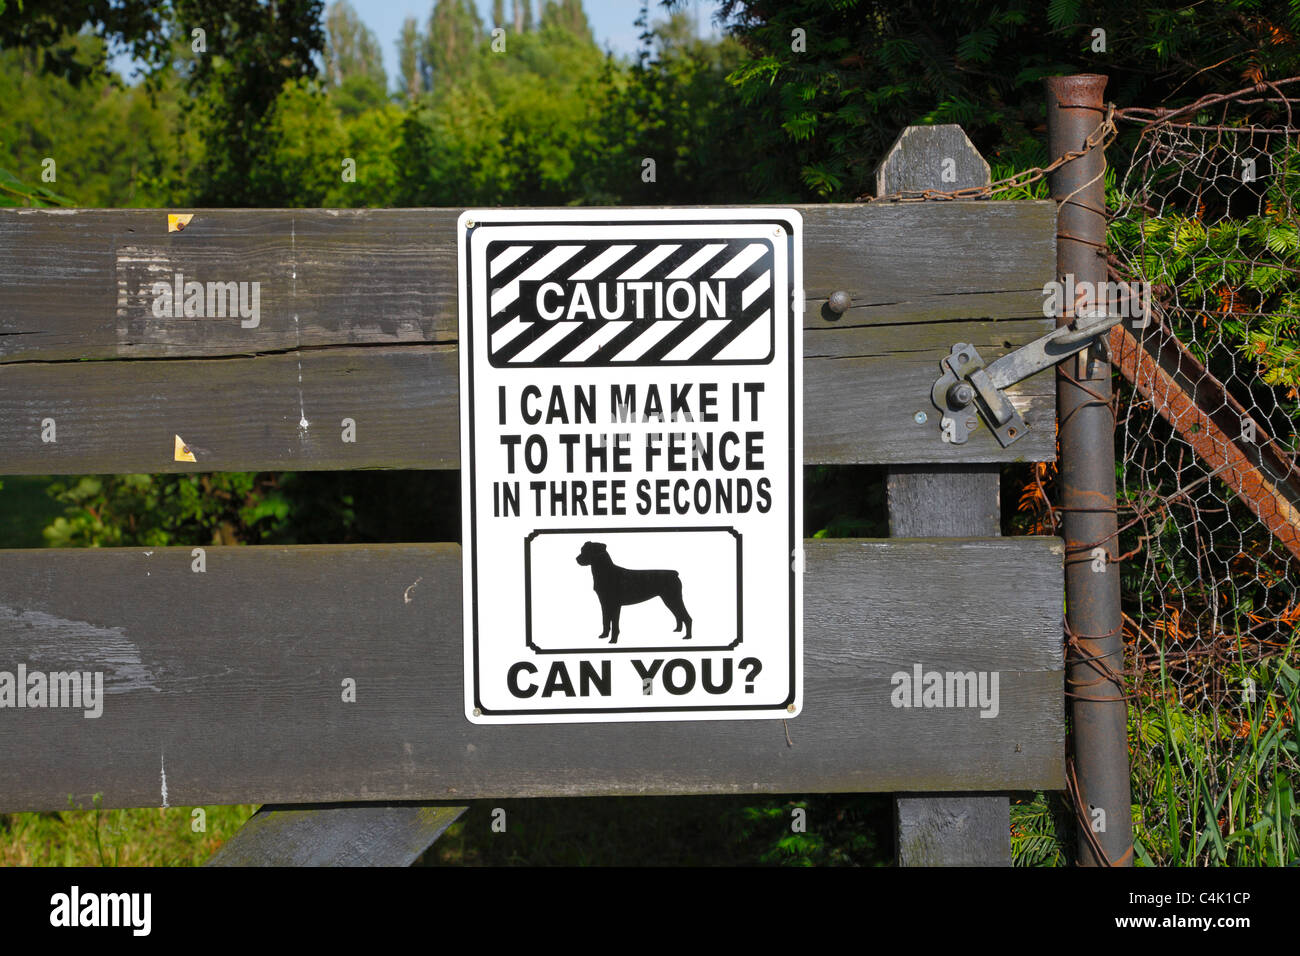 Dog warning sign on gate to private property - I can make it